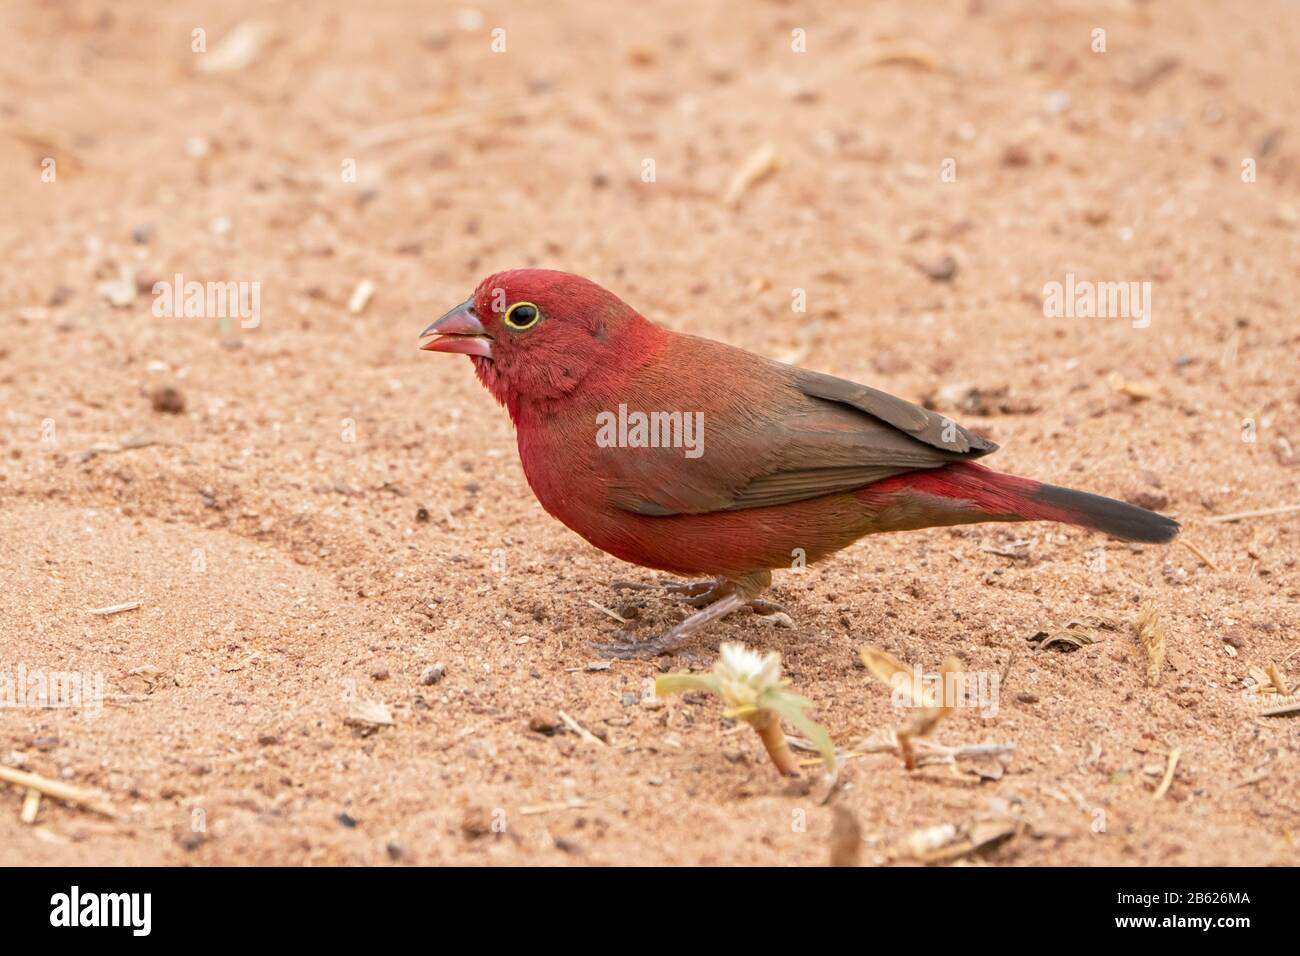 red-billed firefinch, Lagonosticta senegala, adult male standing on ground, Gambia Stock Photo